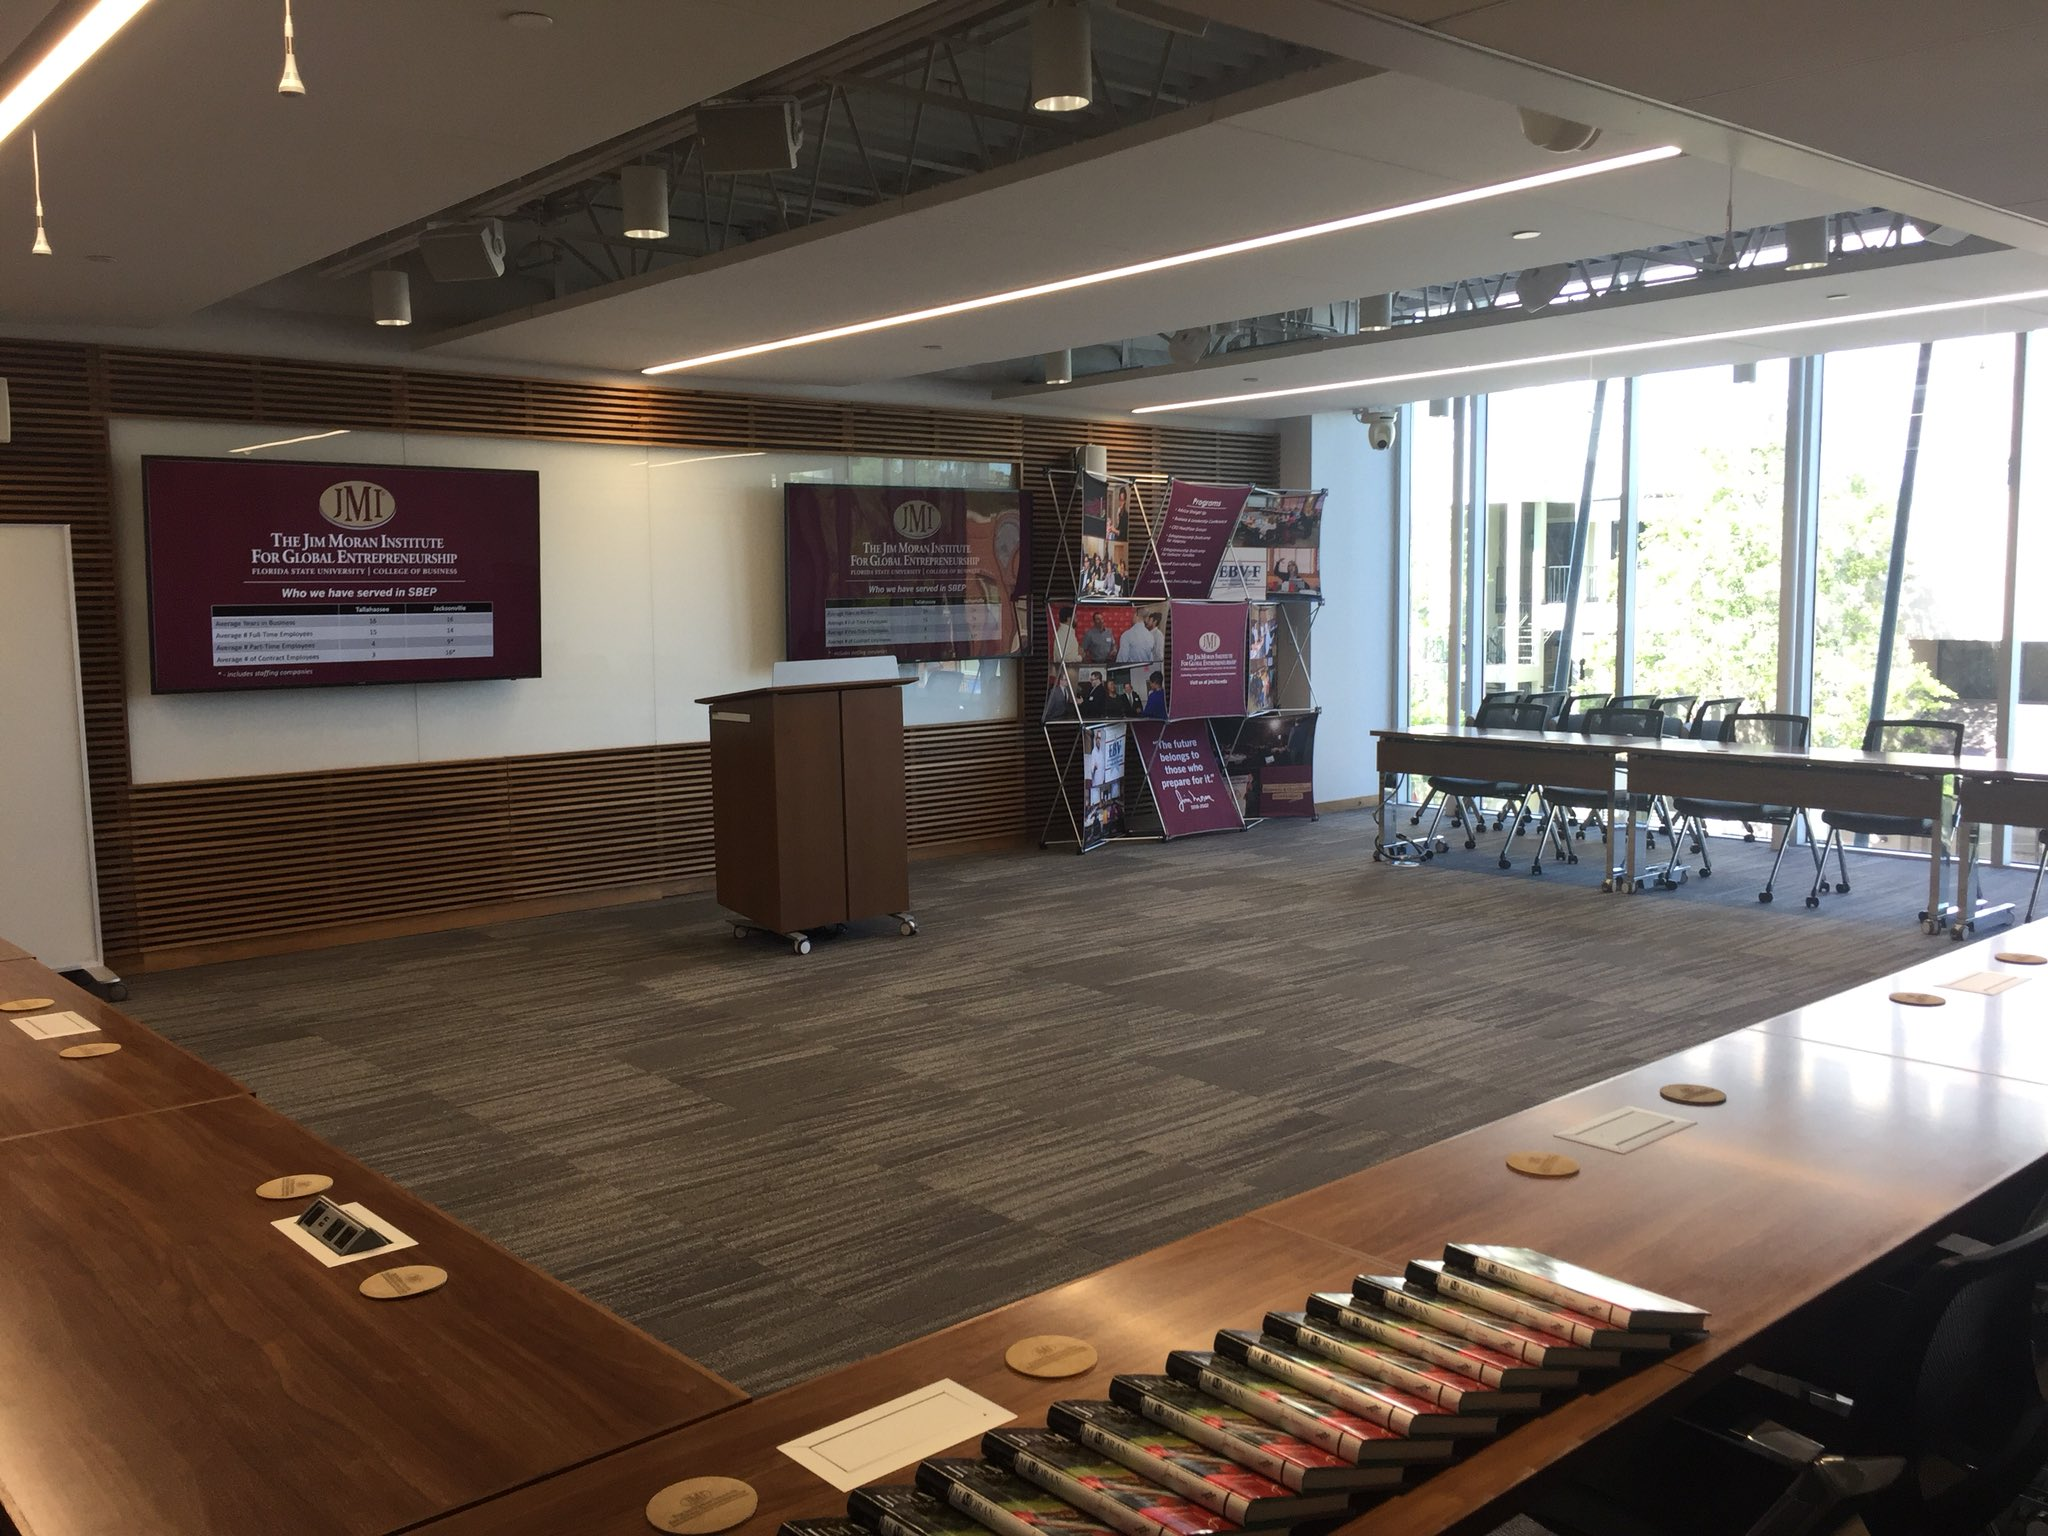 florida state university on twitter fsu hosts ribbon cutting and